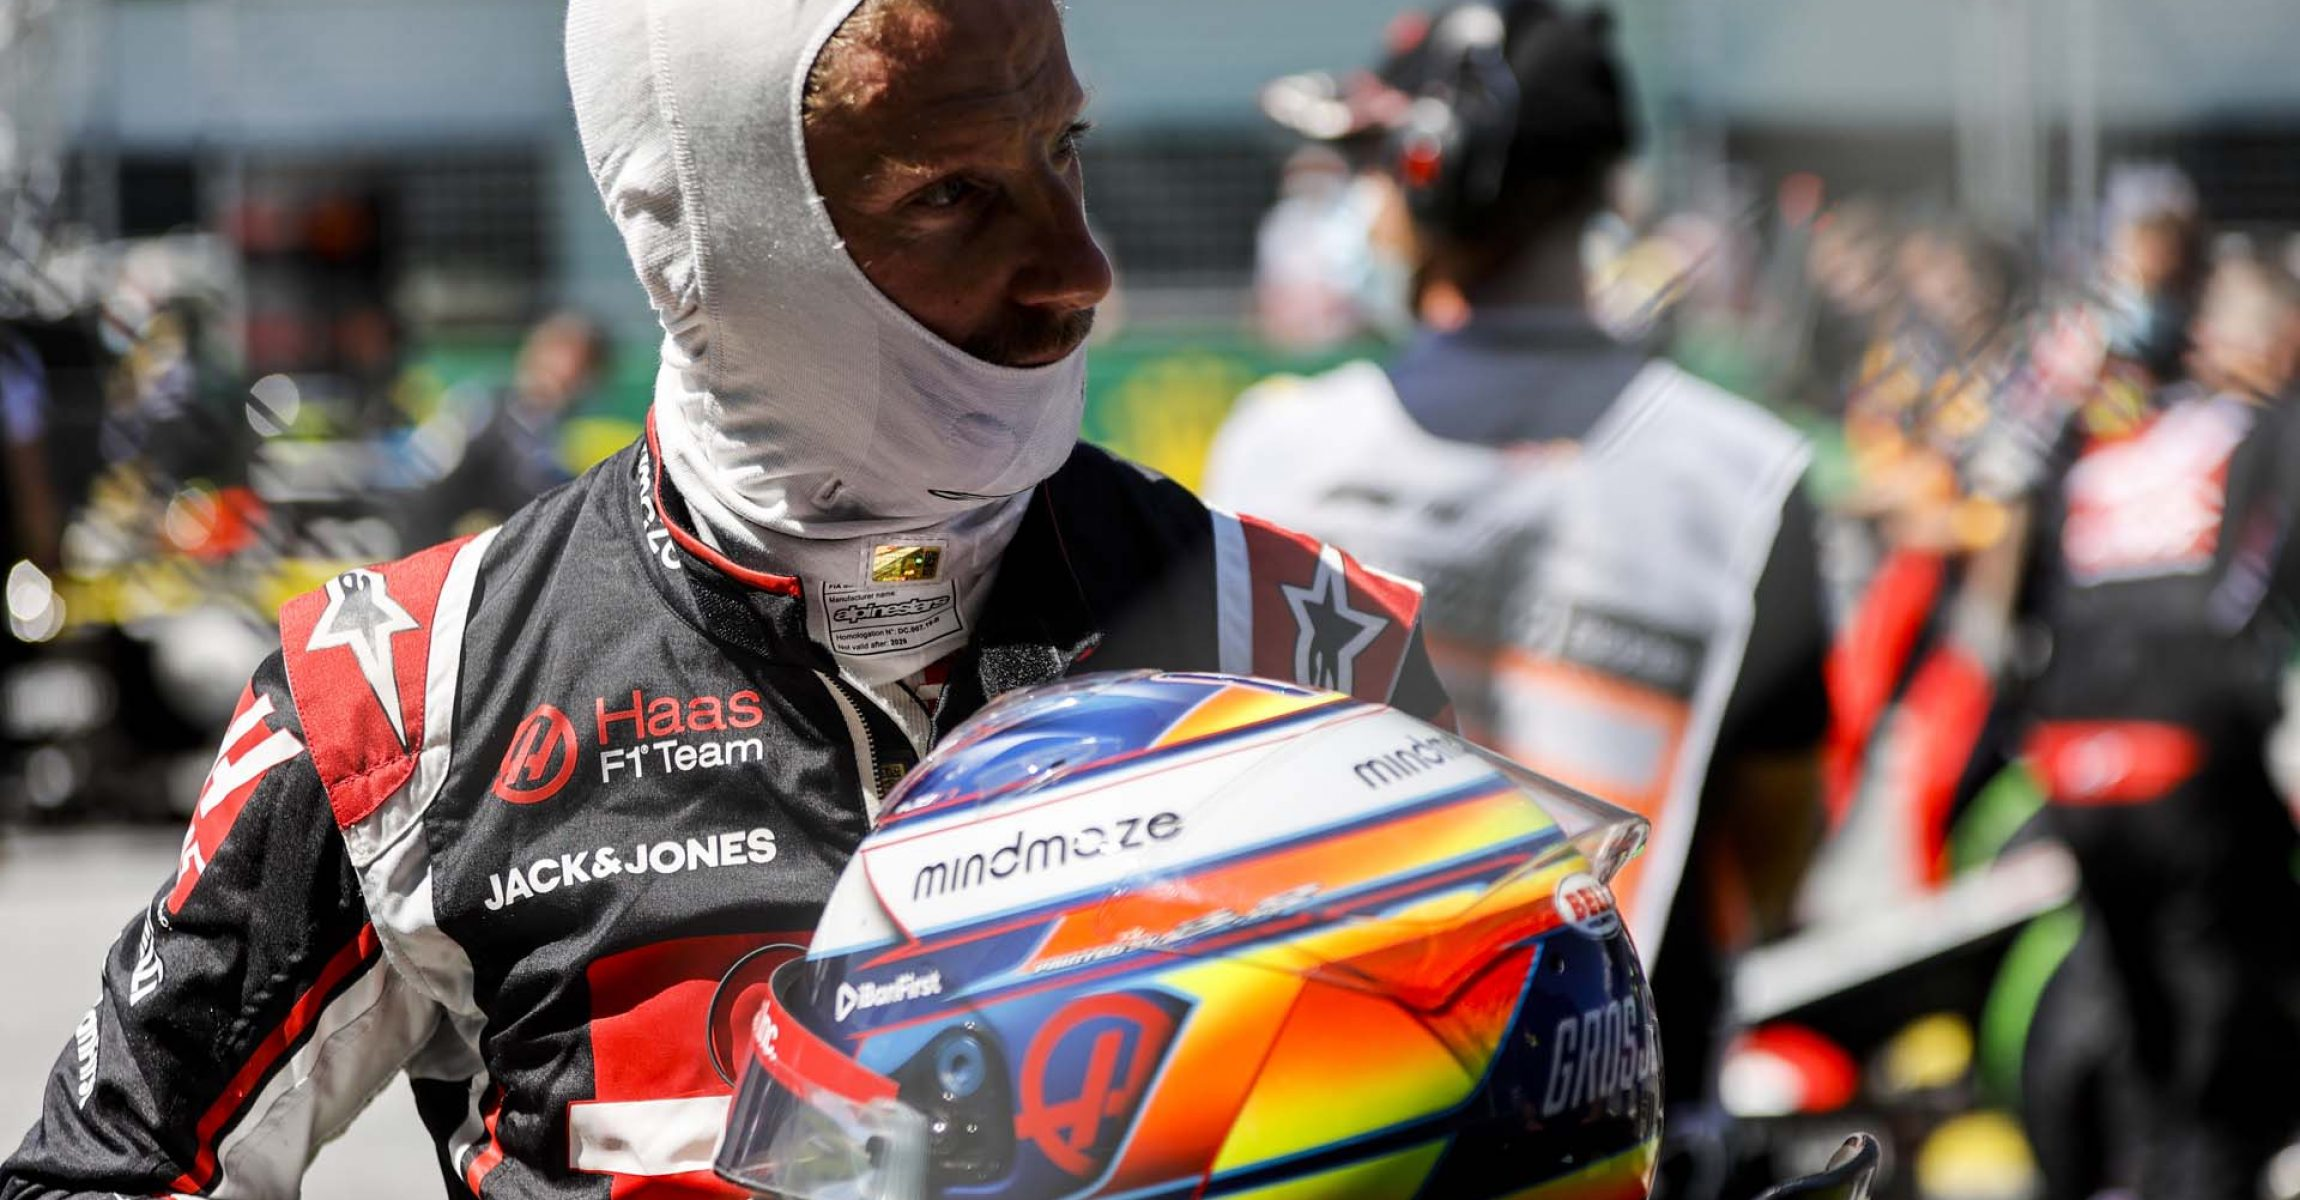 JULY 05: Romain Grosjean, Haas F1, on the grid during the Austrian GP on Sunday July 05, 2020. (Photo by Andy Hone / LAT Images)